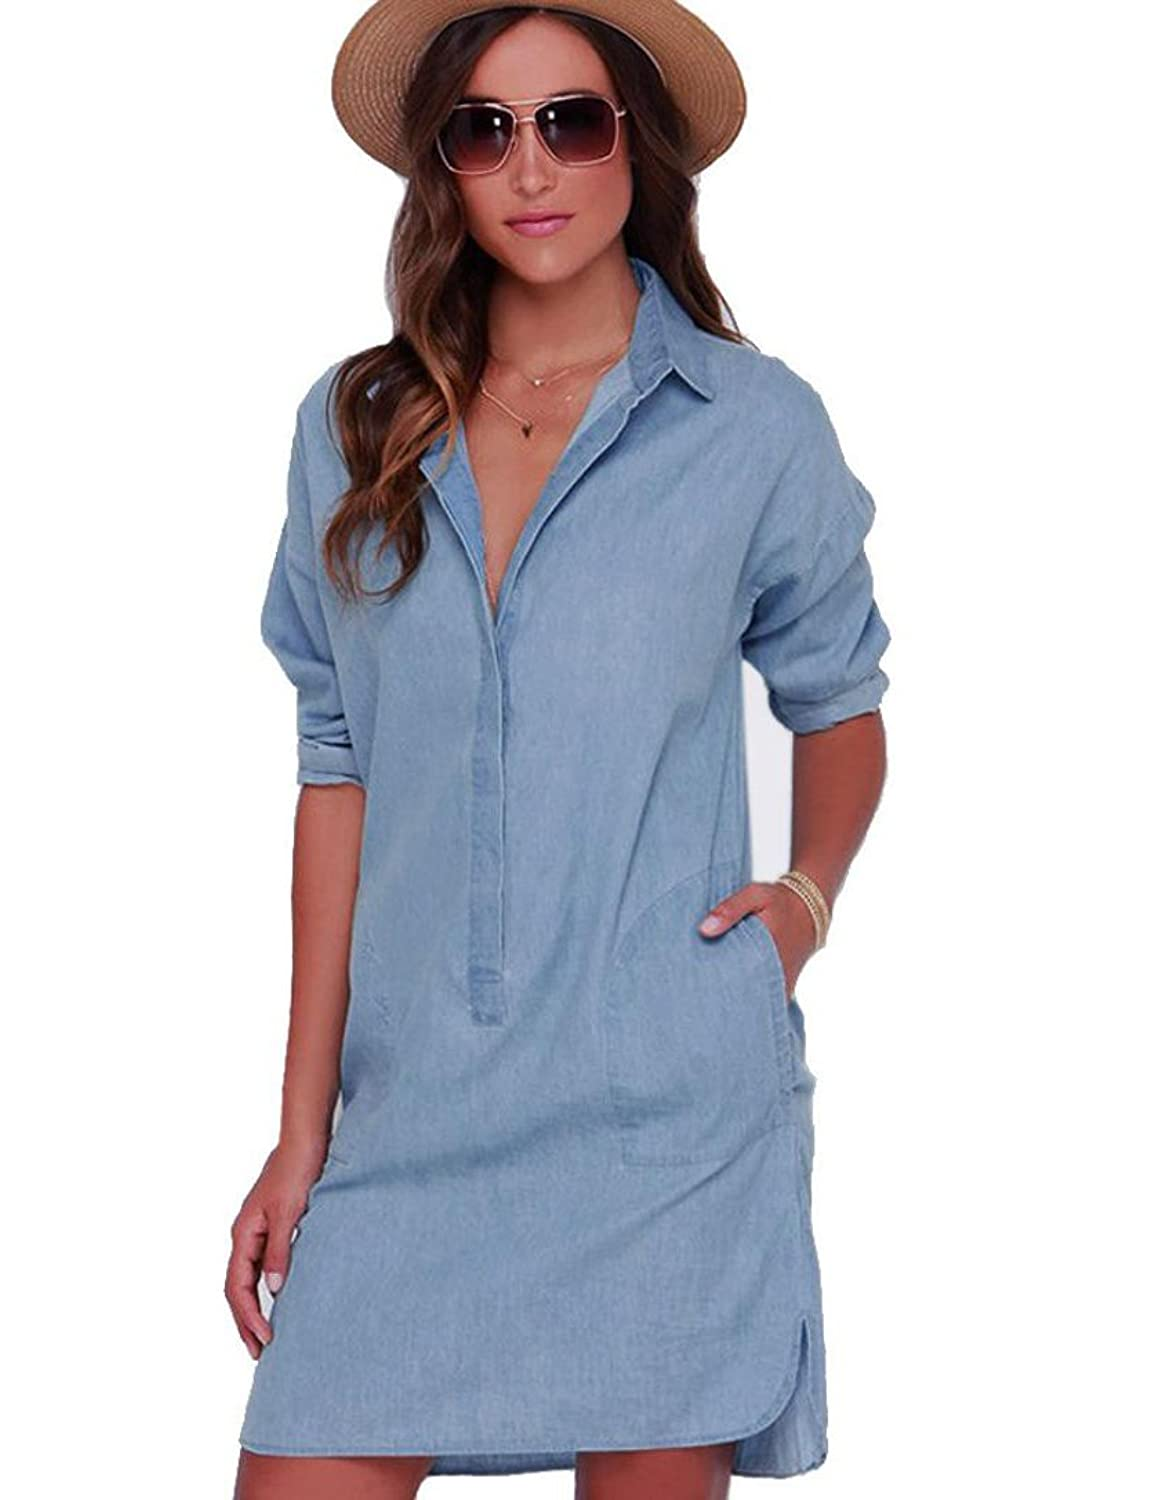 OVERMAL Women&-39-s Fashion Roll Sleeve Button Closure Jeans Dress at ...